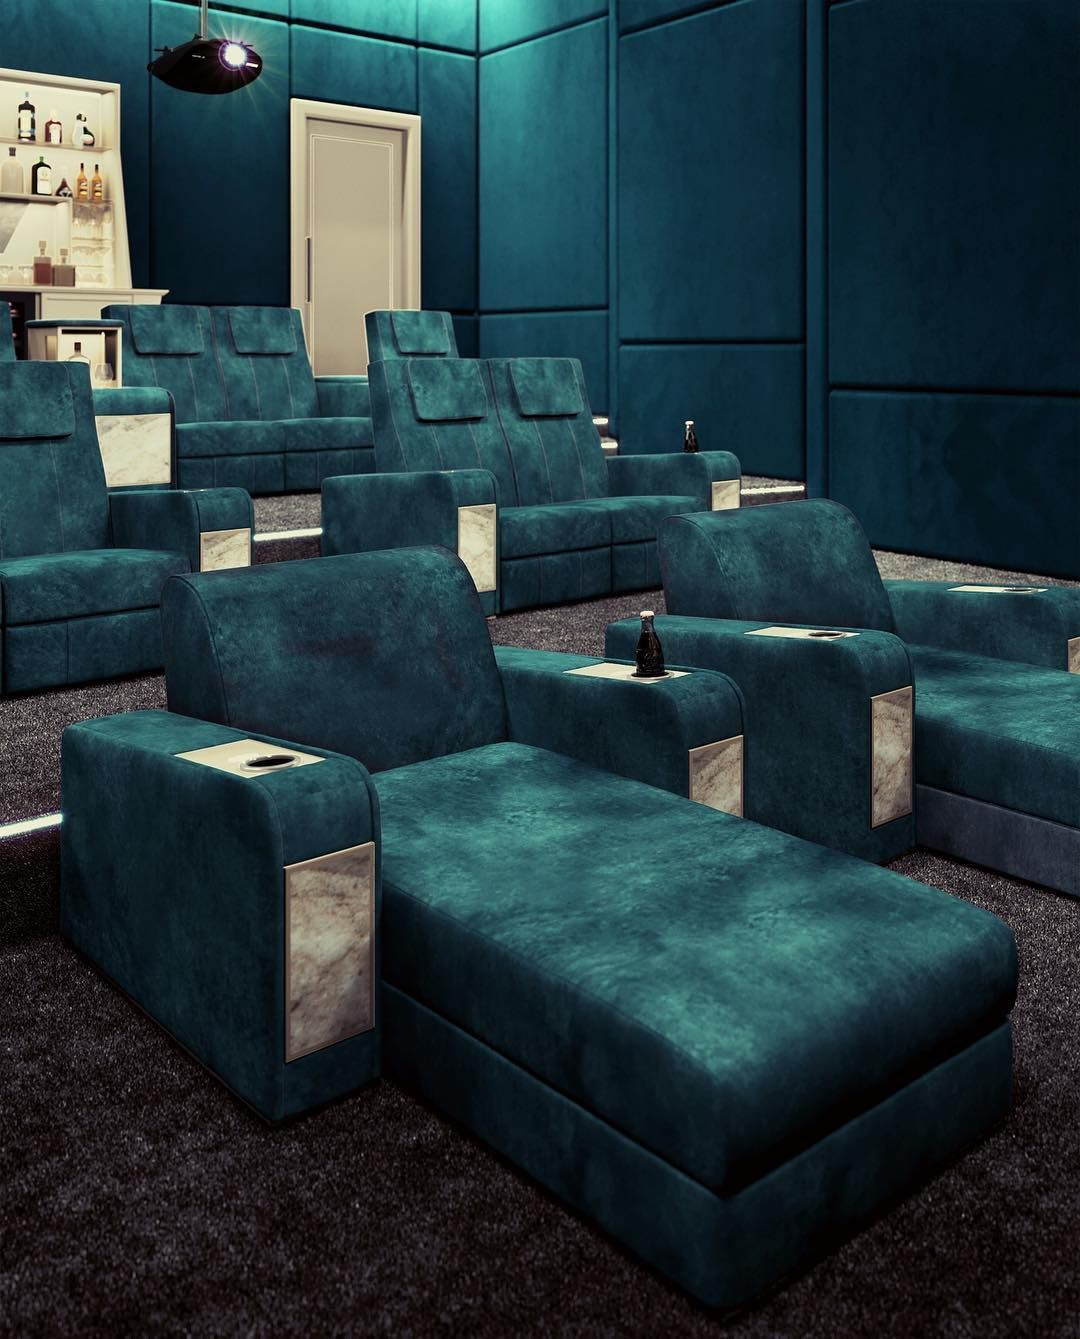 VISMARA DESIGN: Home Theater Room With A Bold Look And